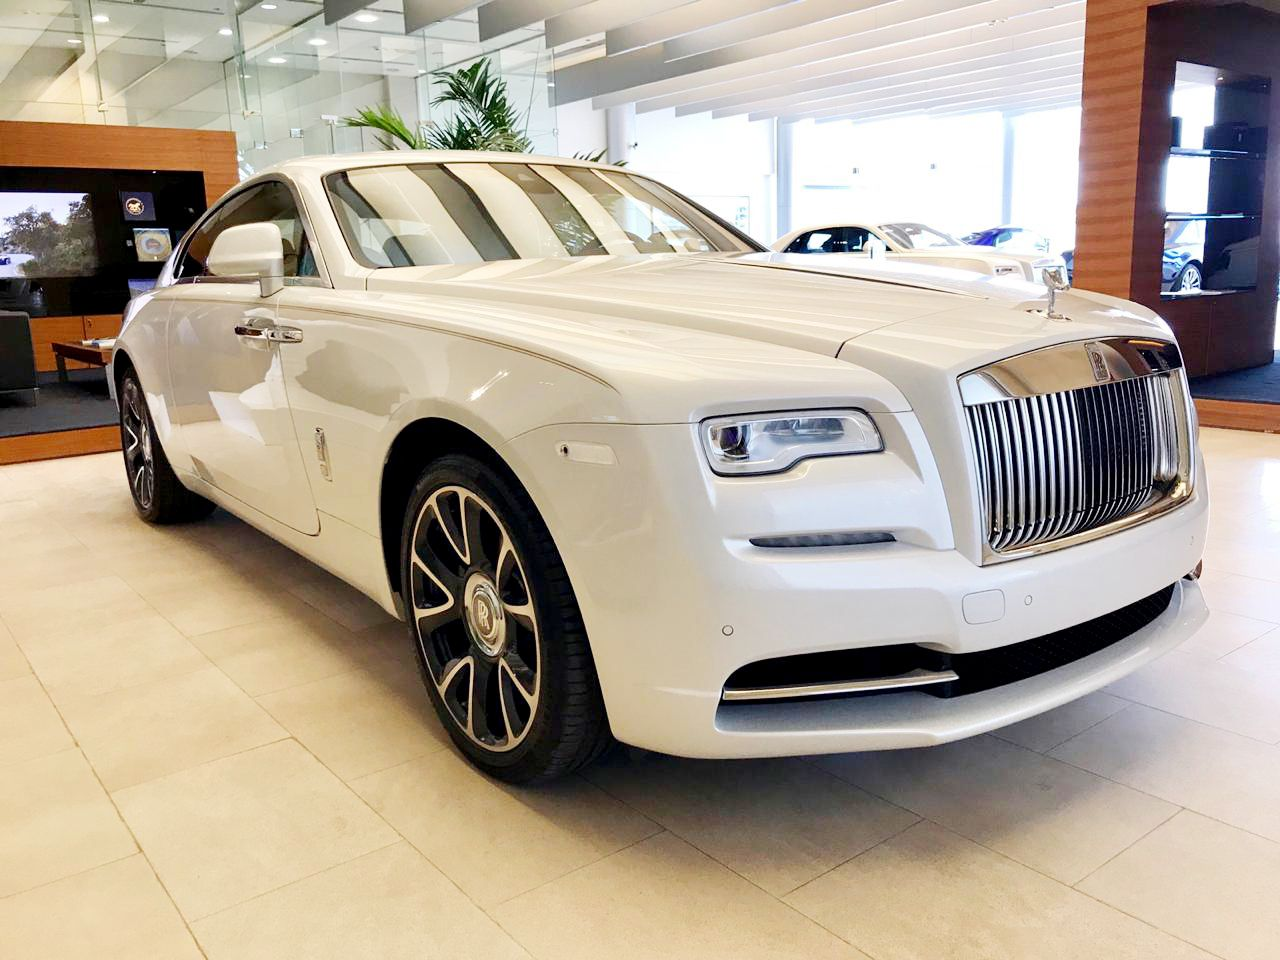 Rolls Royce Wraith Insurance >> Drive The Rolls Royce Wraith In Dubai For Only Aed 3400 Day